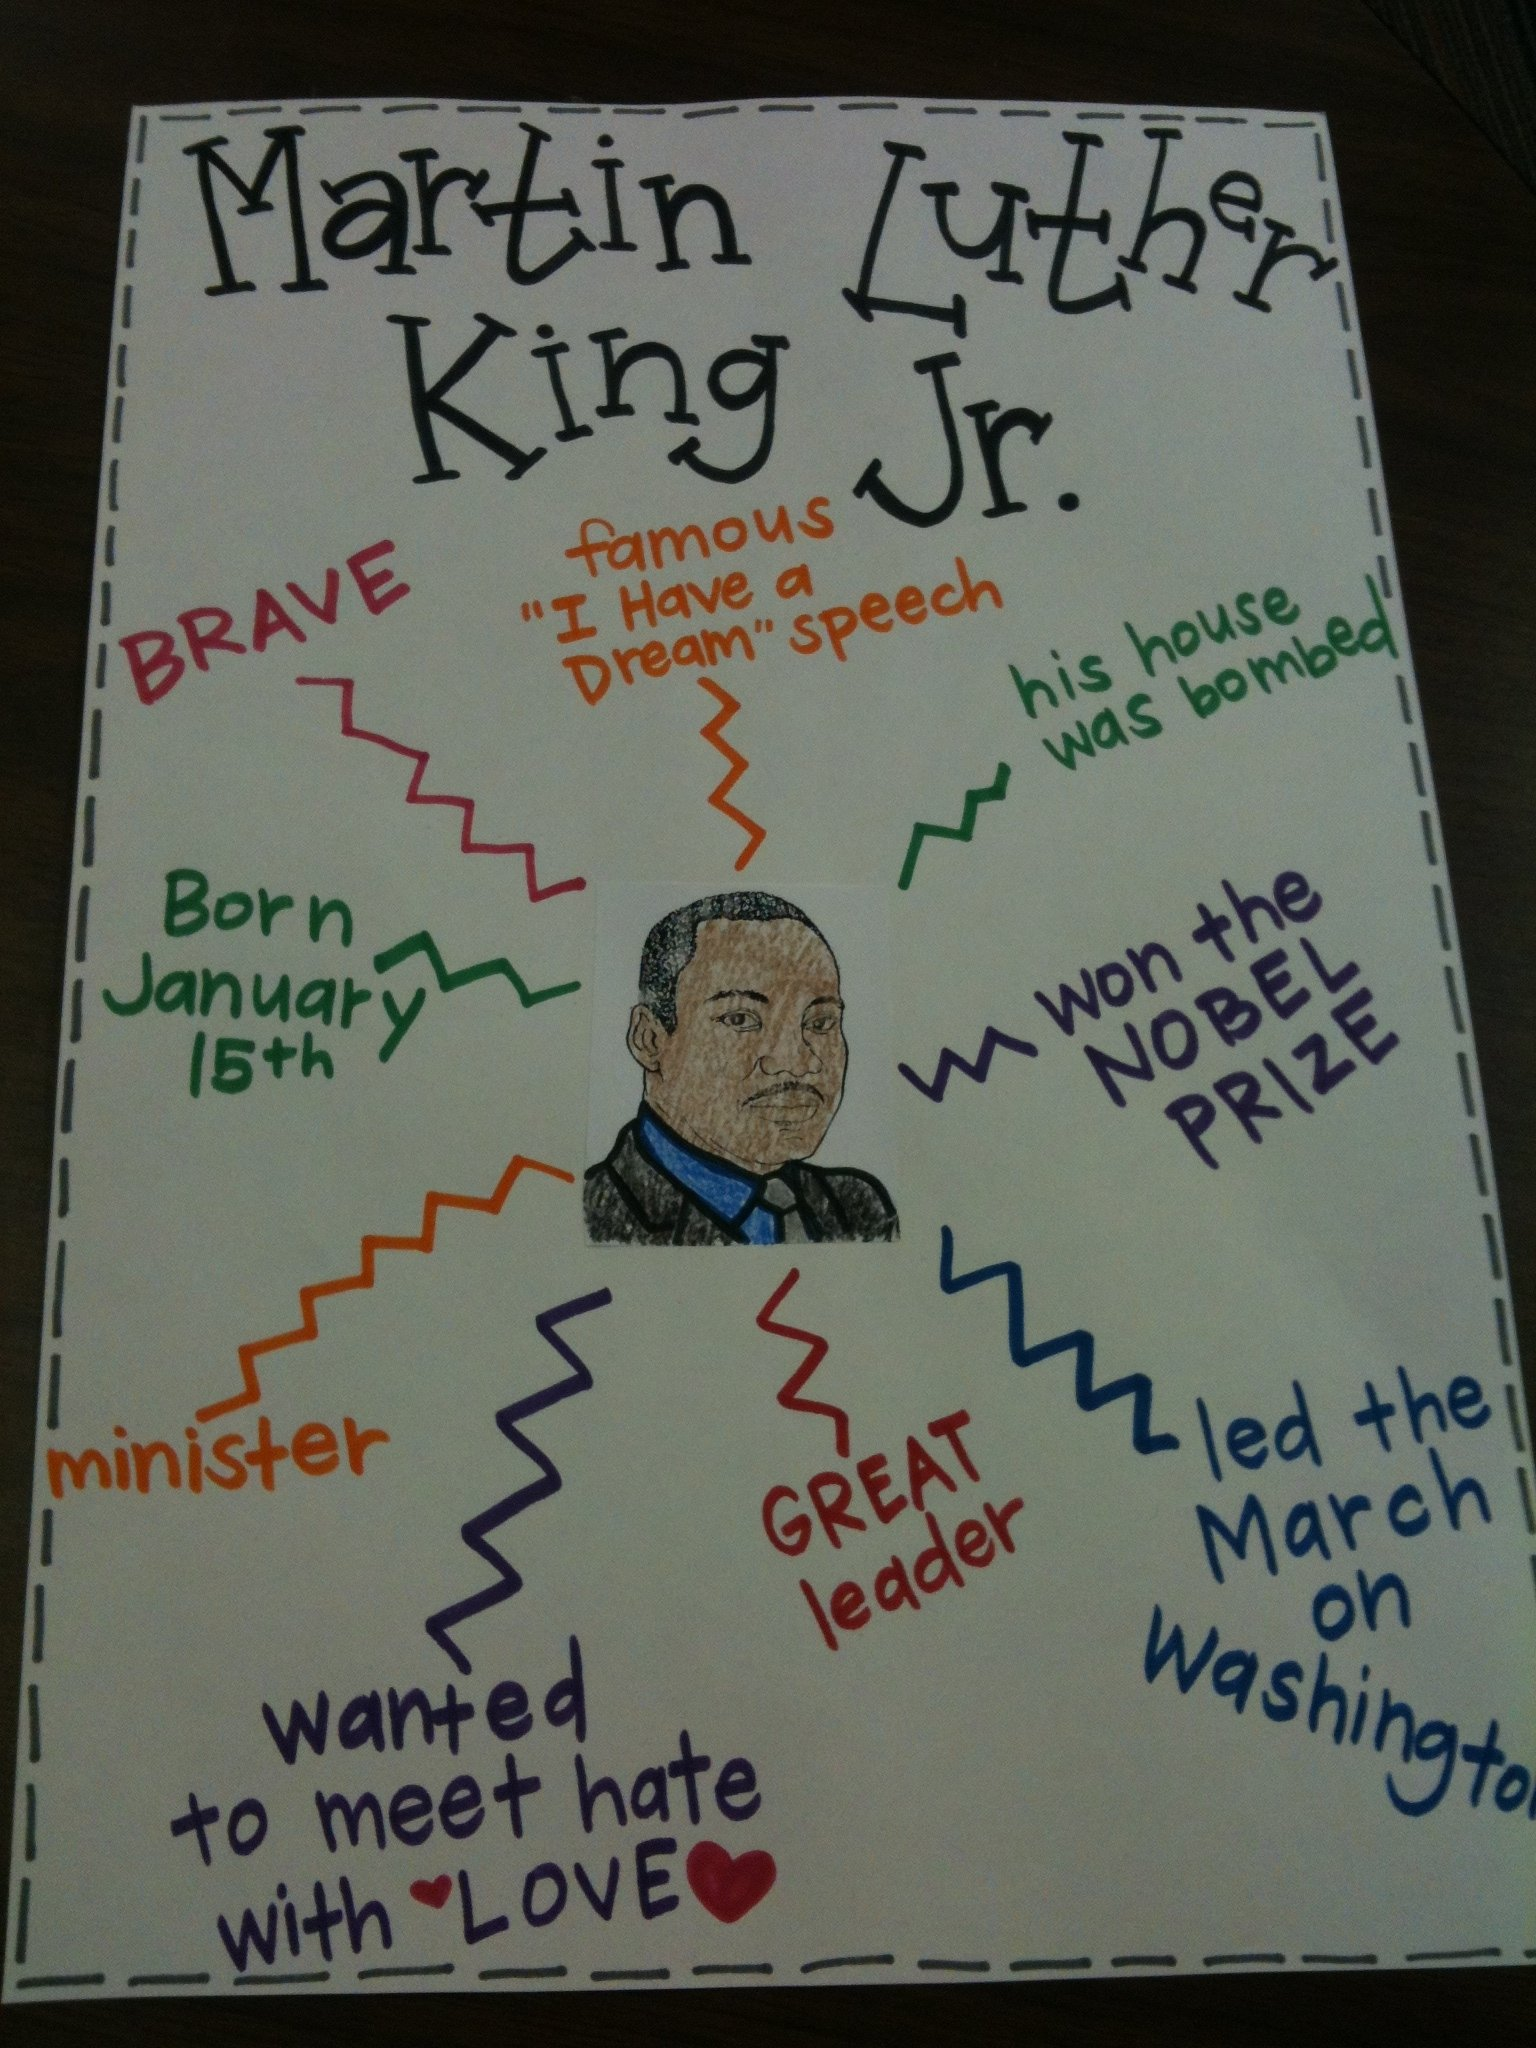 10 Spectacular Martin Luther King Jr Ideas martin luther king jr im saving this because it reminds me of a 1 2020